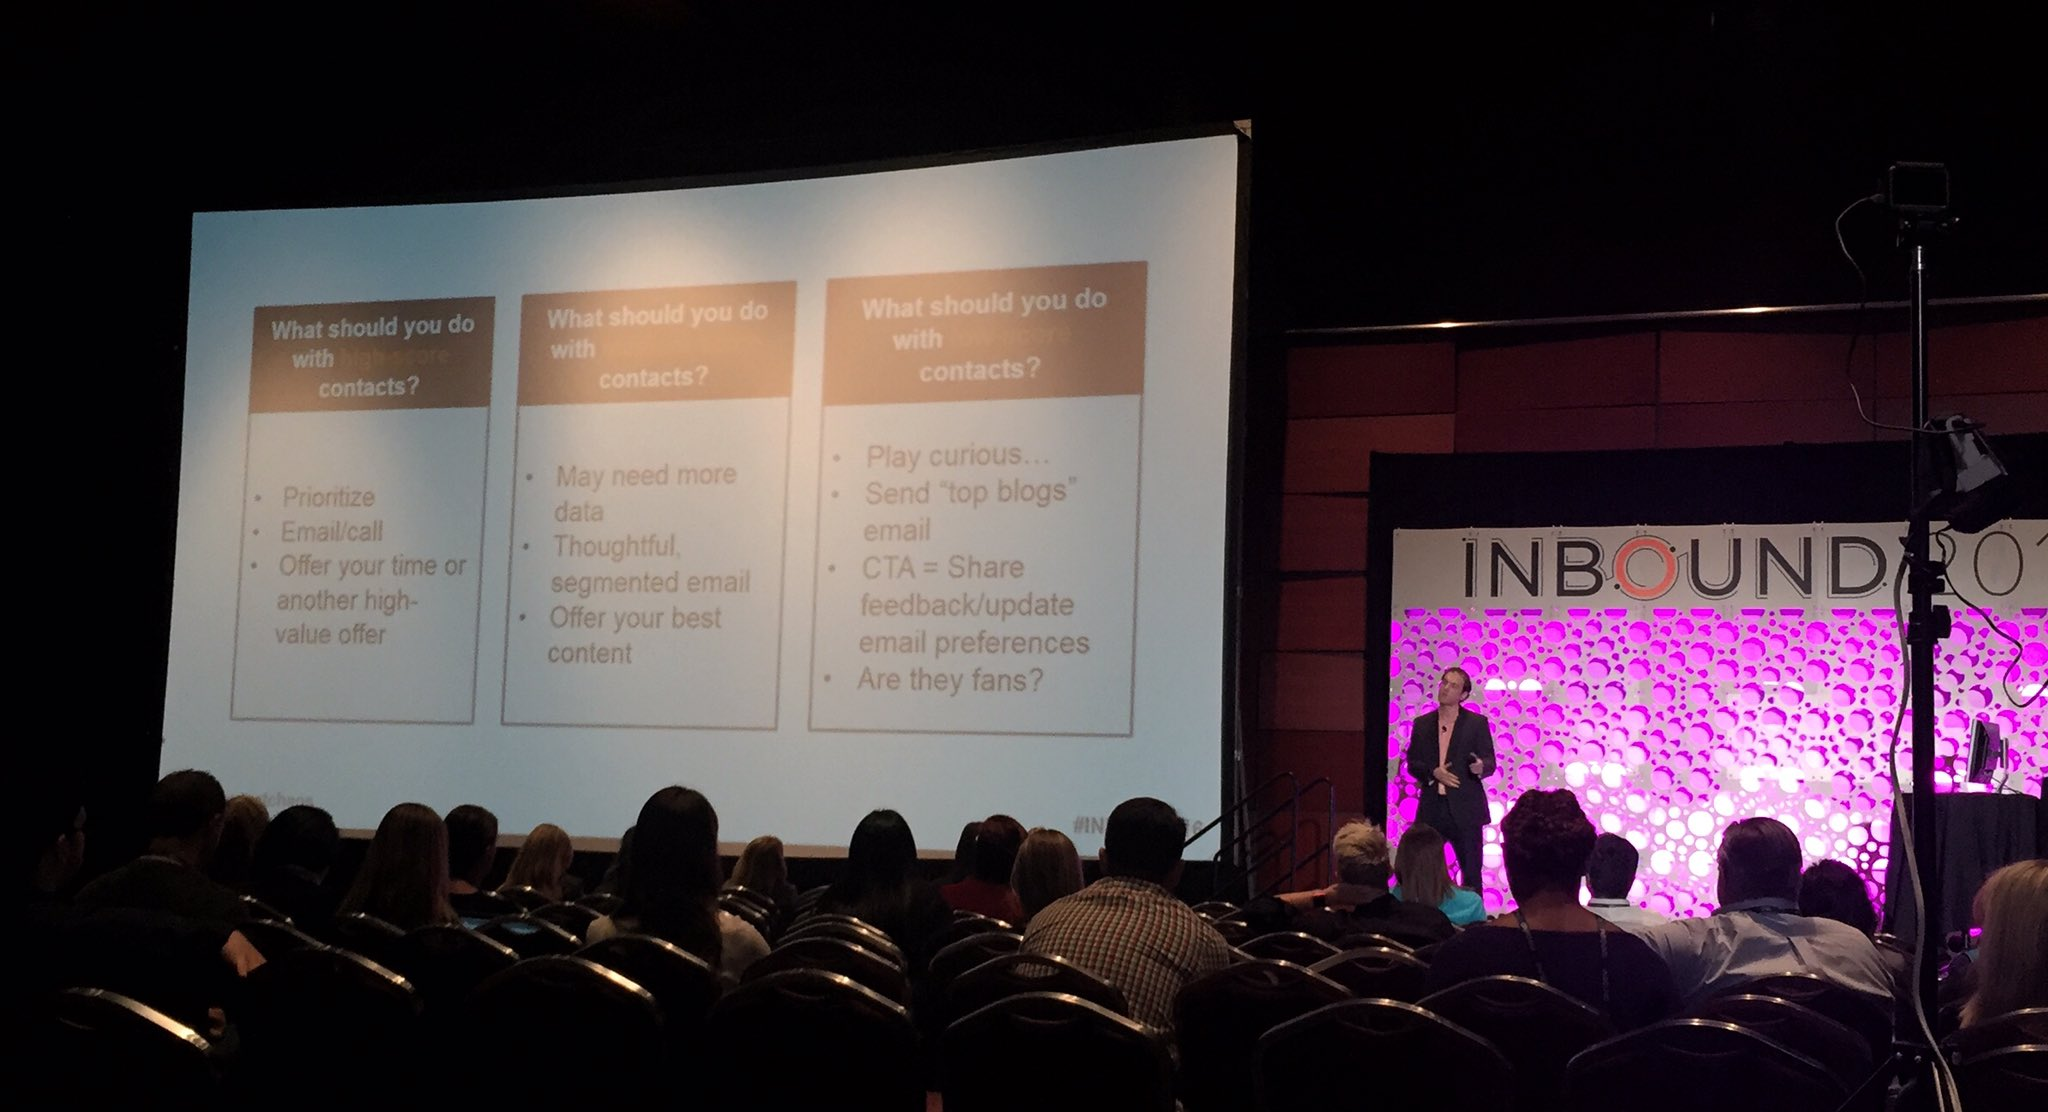 Nov 16 - Nick presenting tips to engage contacts based on score, INBOUND16.jpg-large.jpeg